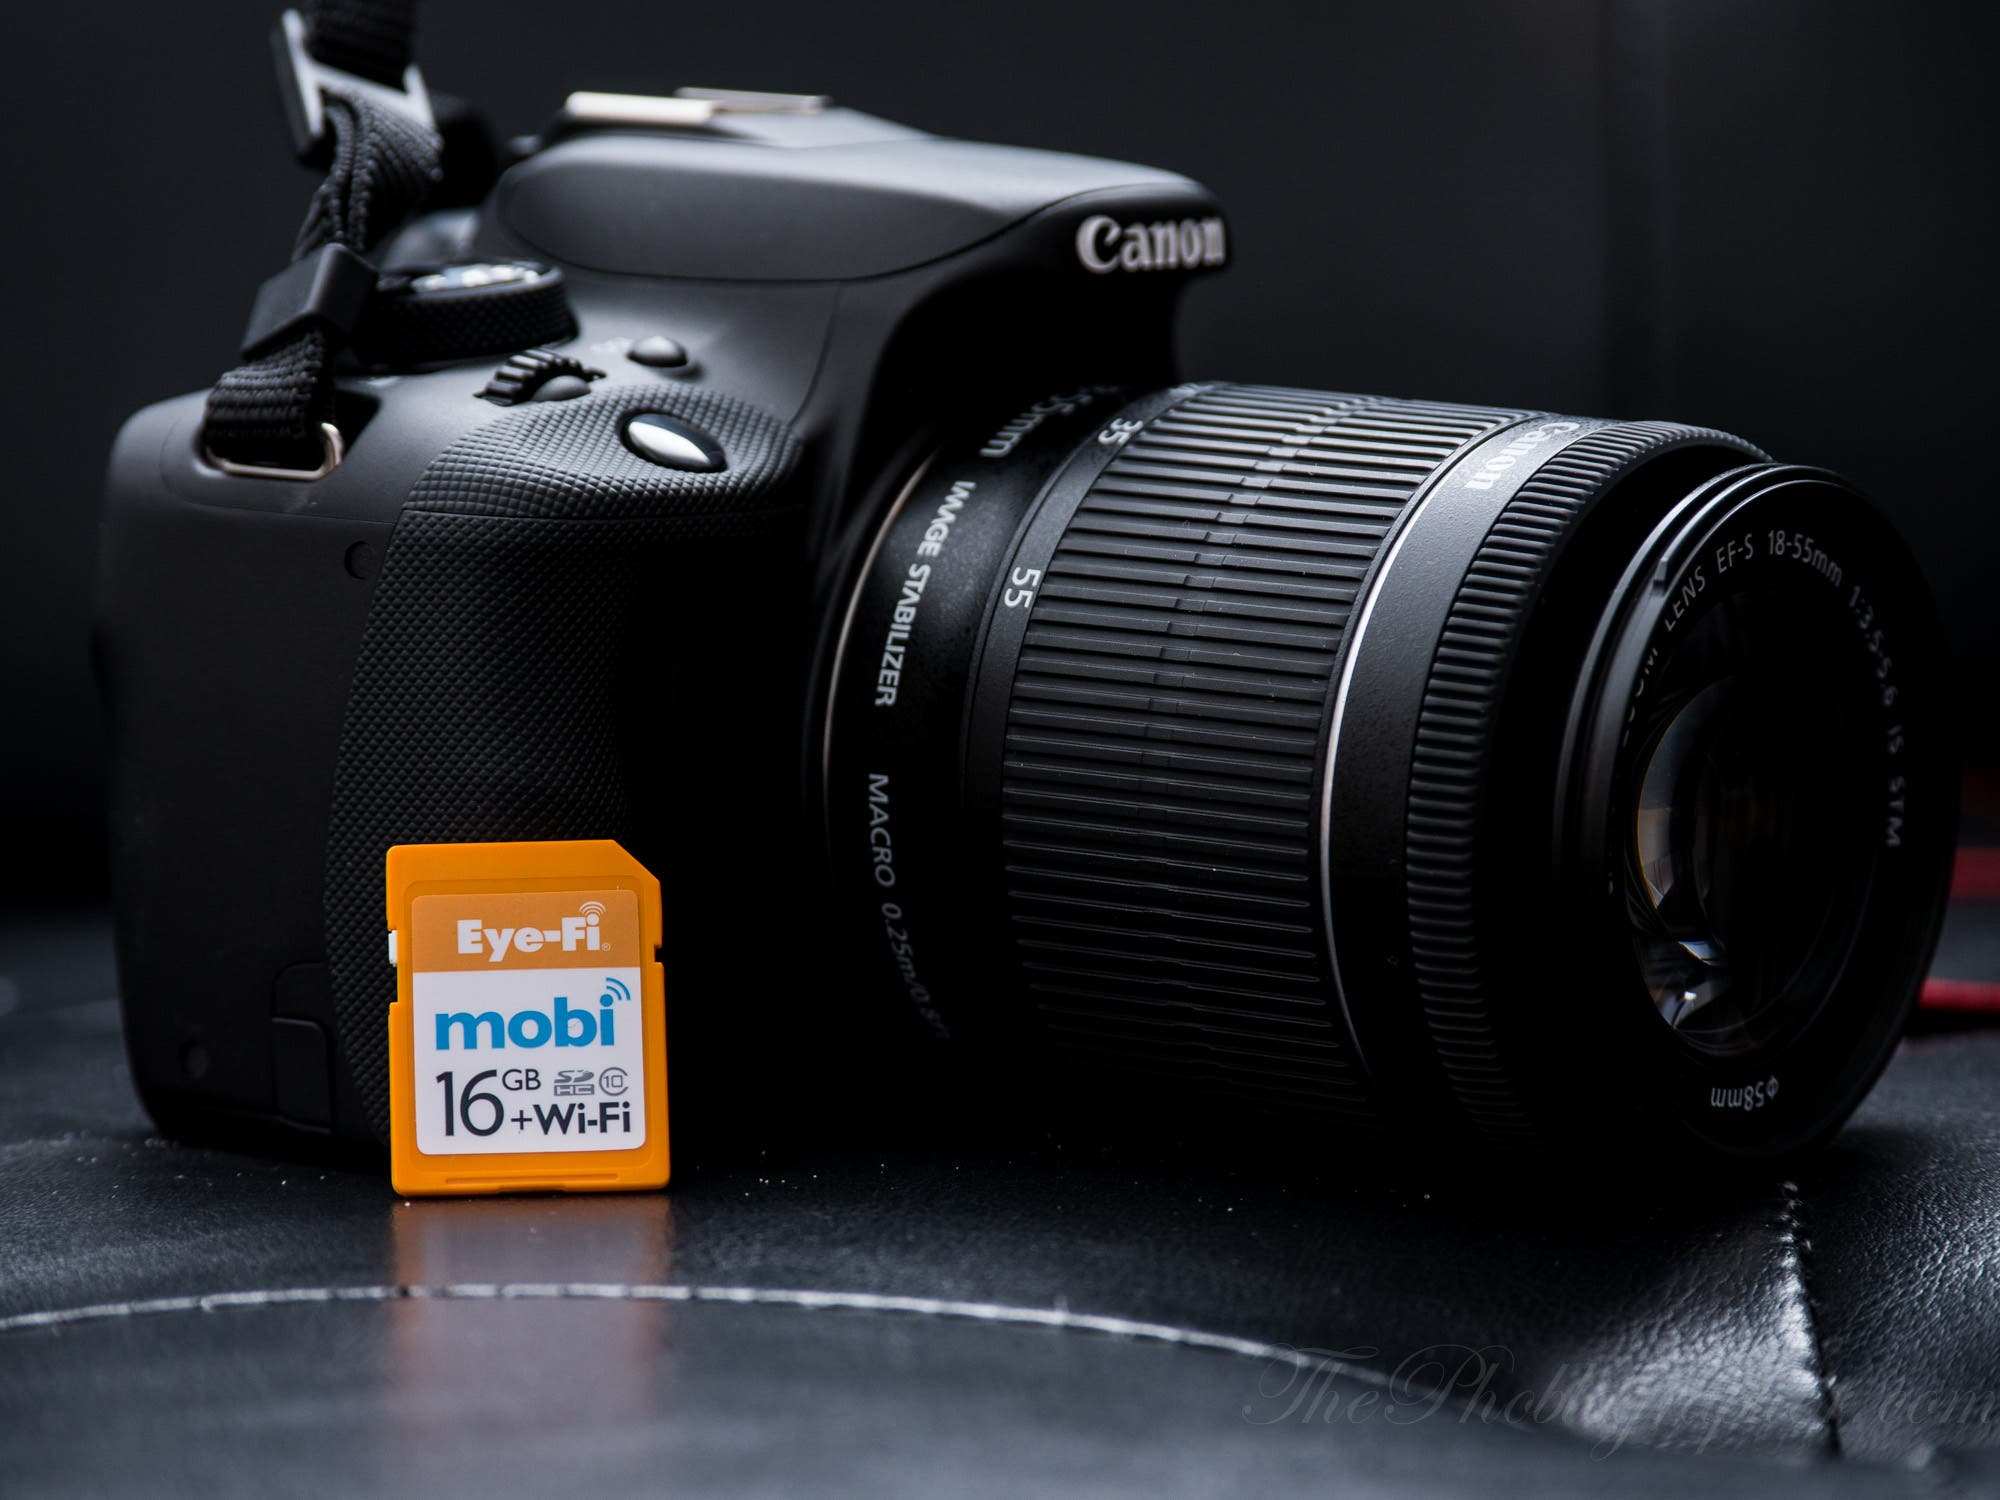 Review: Eye-Fi Mobi SDHC Card (16 GB)